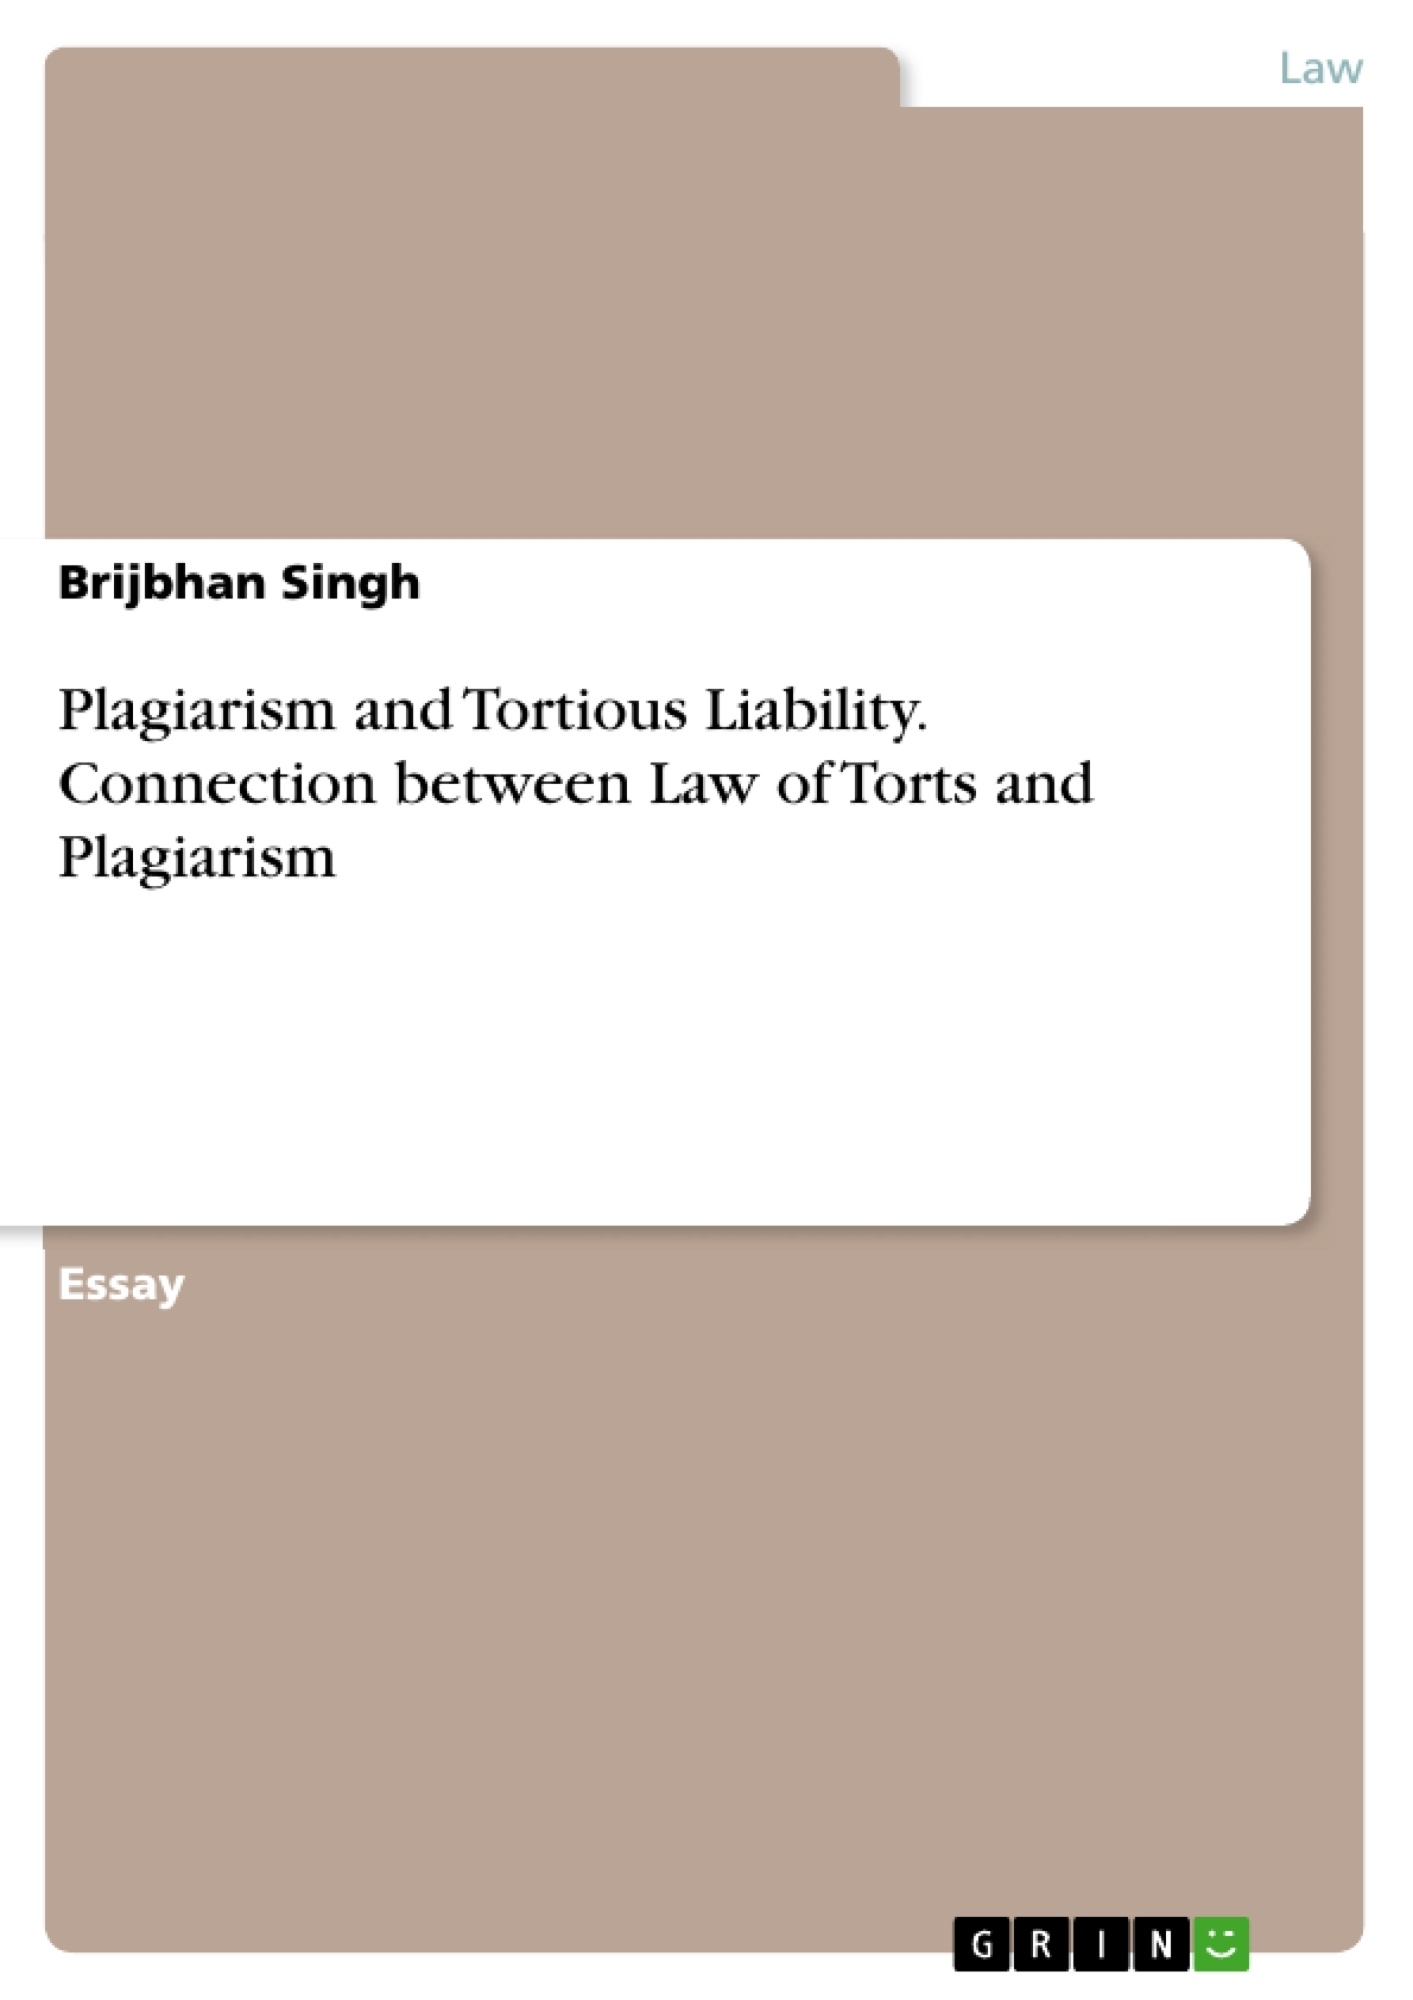 Plagiarism and tortious liability connection between law of torts upload your own papers earn money and win an iphone x biocorpaavc Choice Image